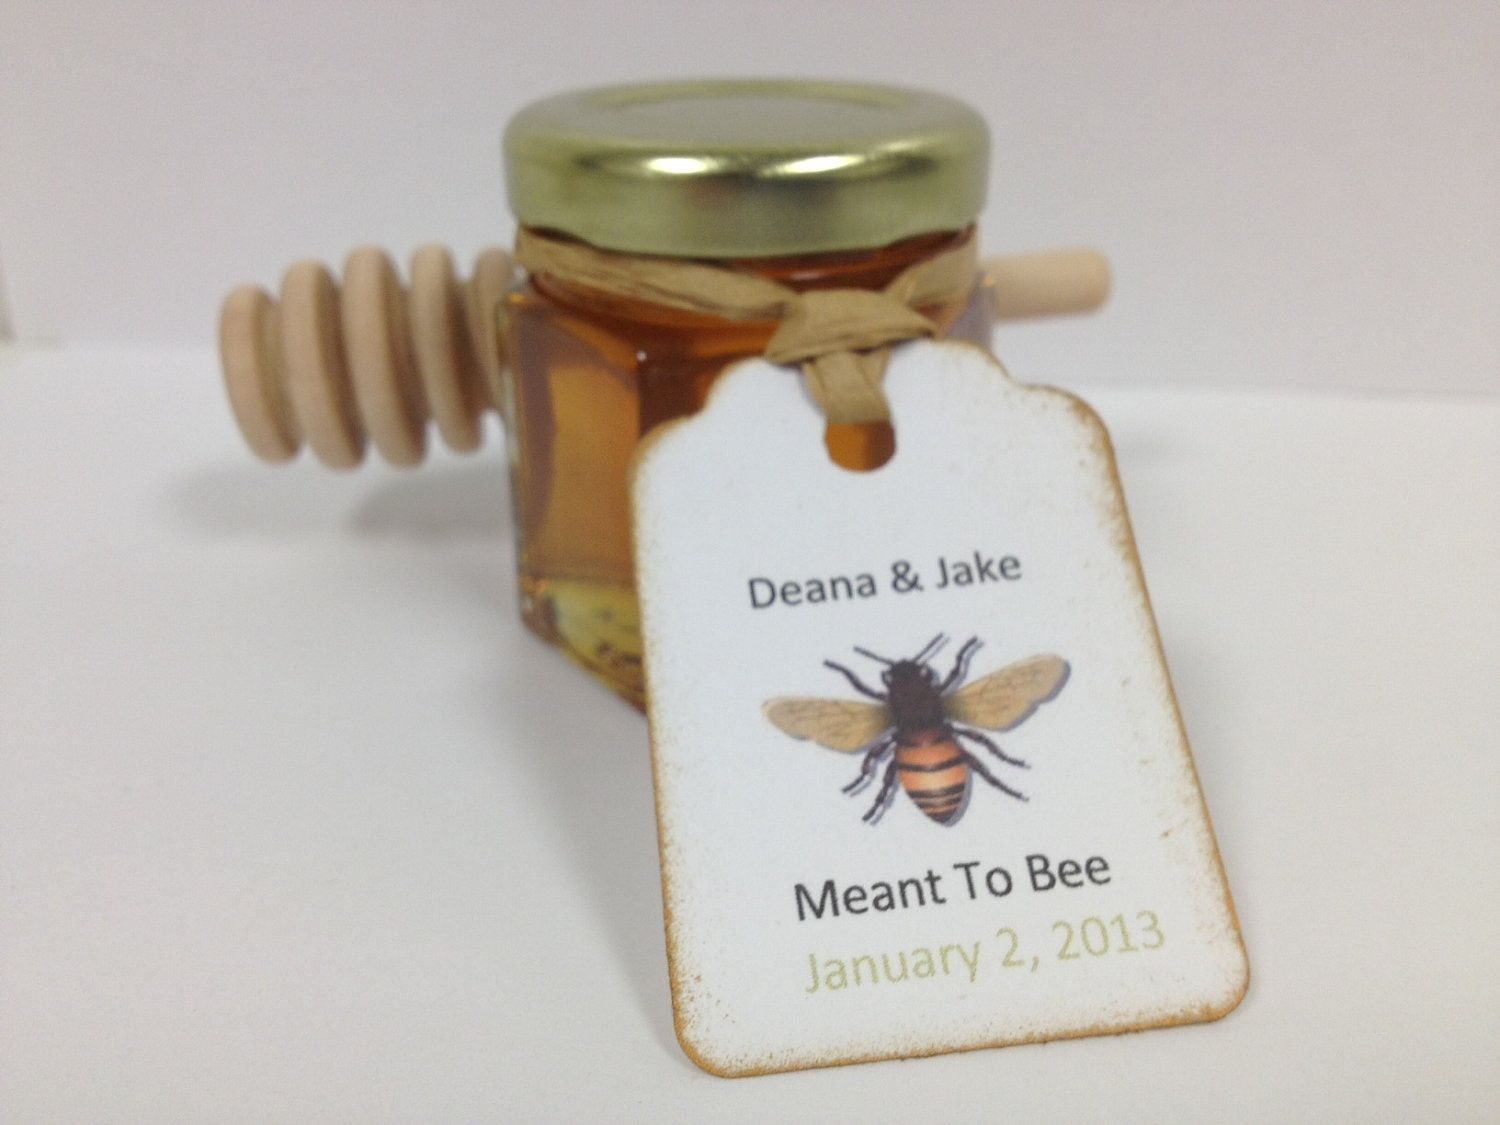 100 Qty Meant To Bee Honey Wedding Shower Favors With Dipper ...